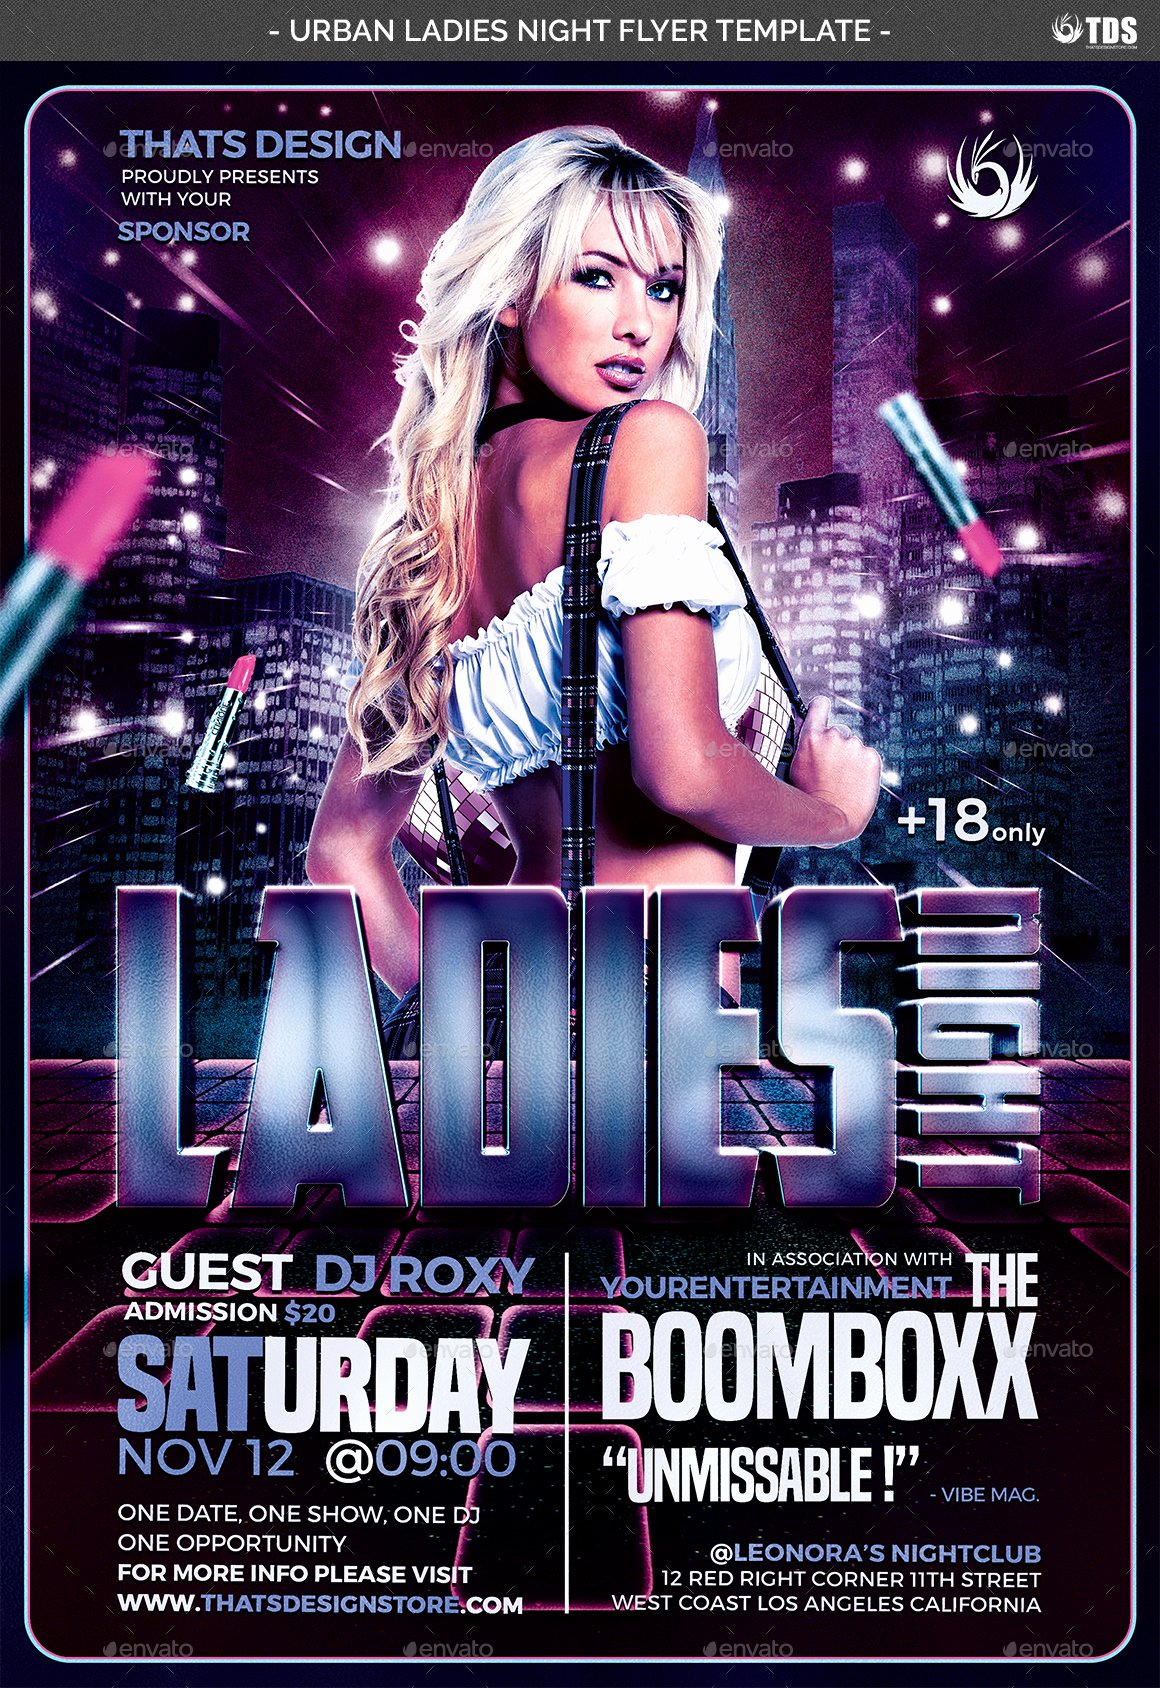 Ladies Night Flyer Template Fresh Urban La S Night Flyer Template by Lou606